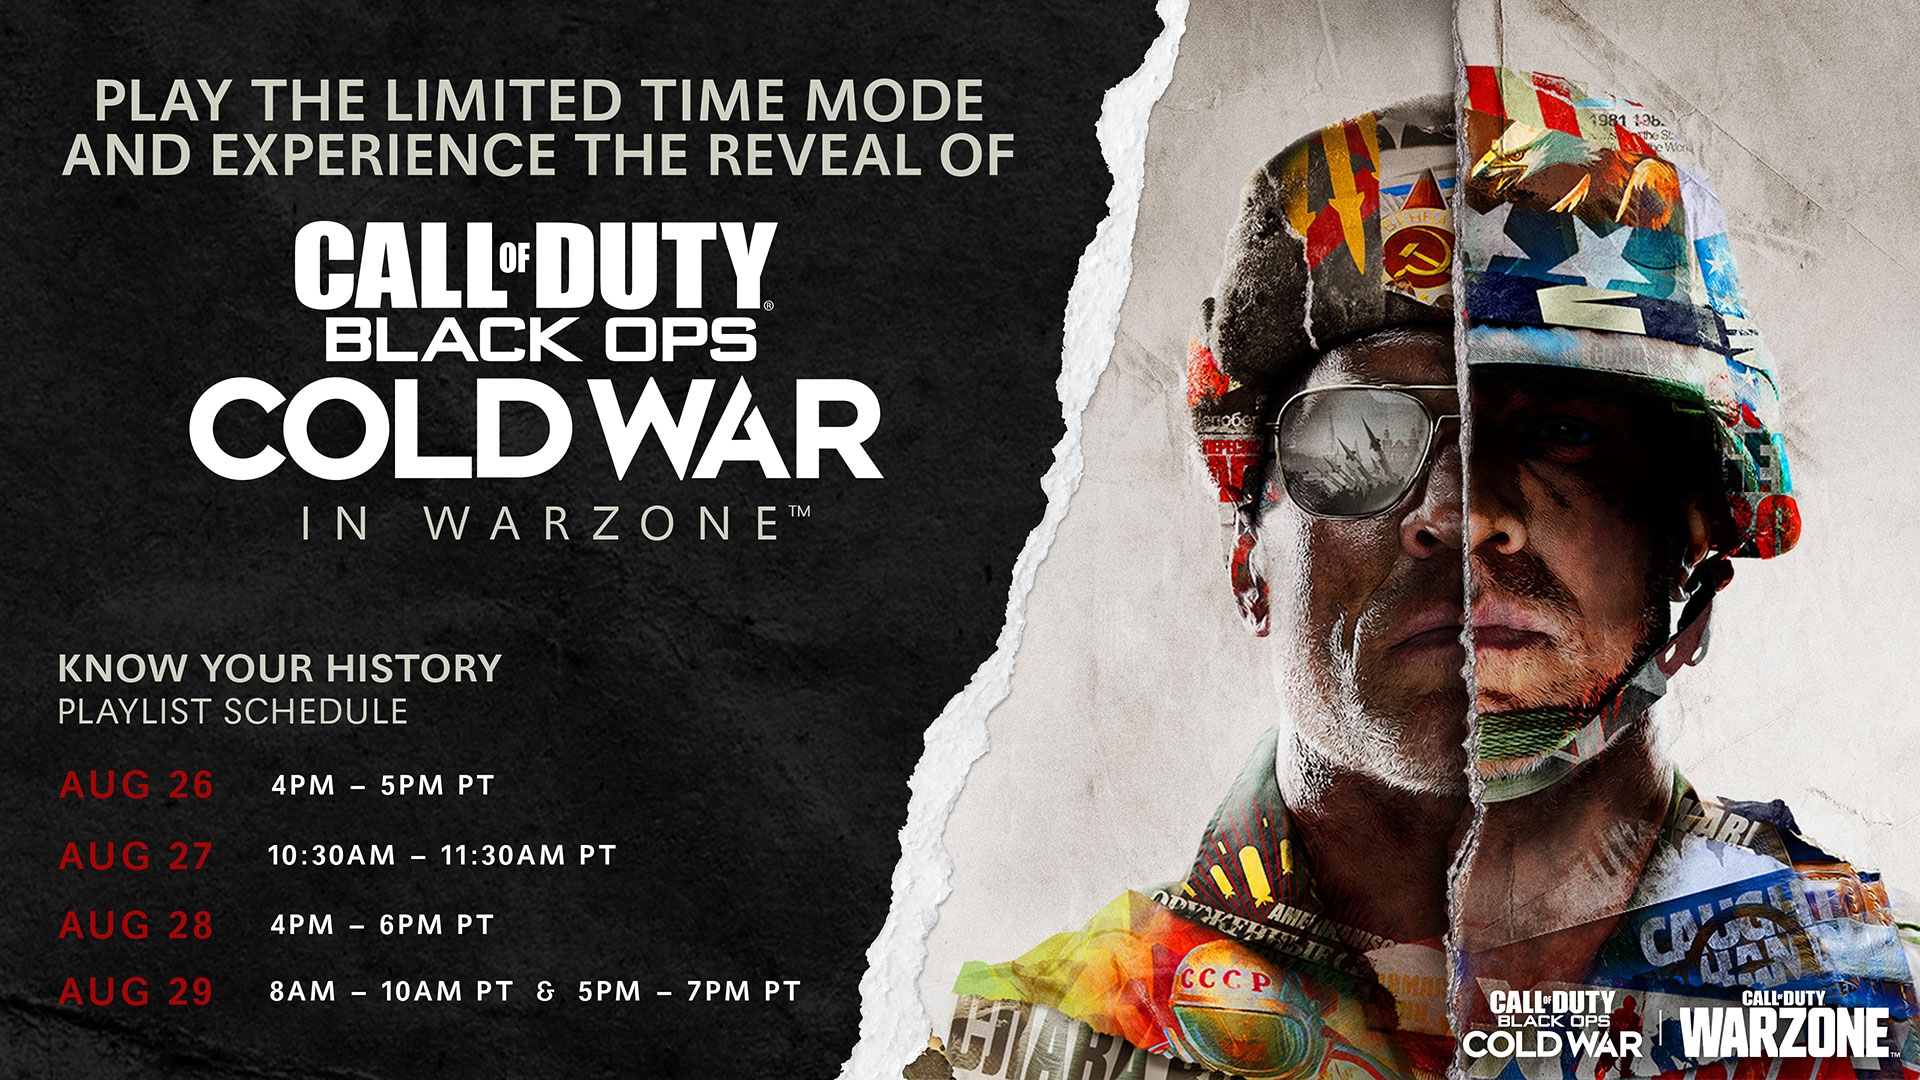 Call Of Duty Warzone News On Twitter Re Experience The Call Of Duty Black Ops Cold War World Reveal In Warzone Here Is The Know Your History Playlist Schedule Https T Co Mi4fmdiusj